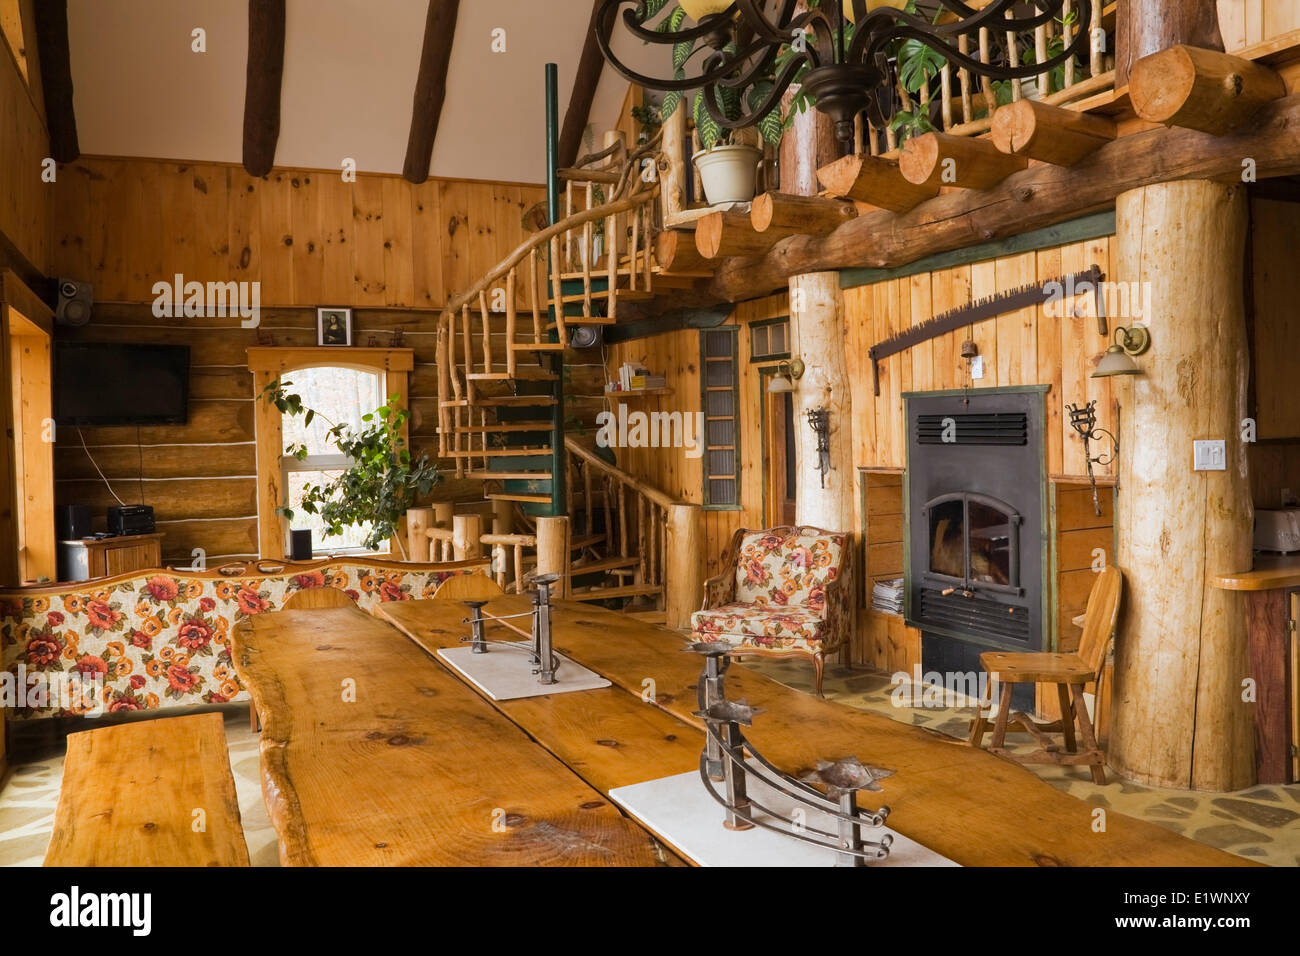 View The Dining Room Table Area Inside A Rustic Cottage Style Residential Log Home Quebec Canada This Image Is Property